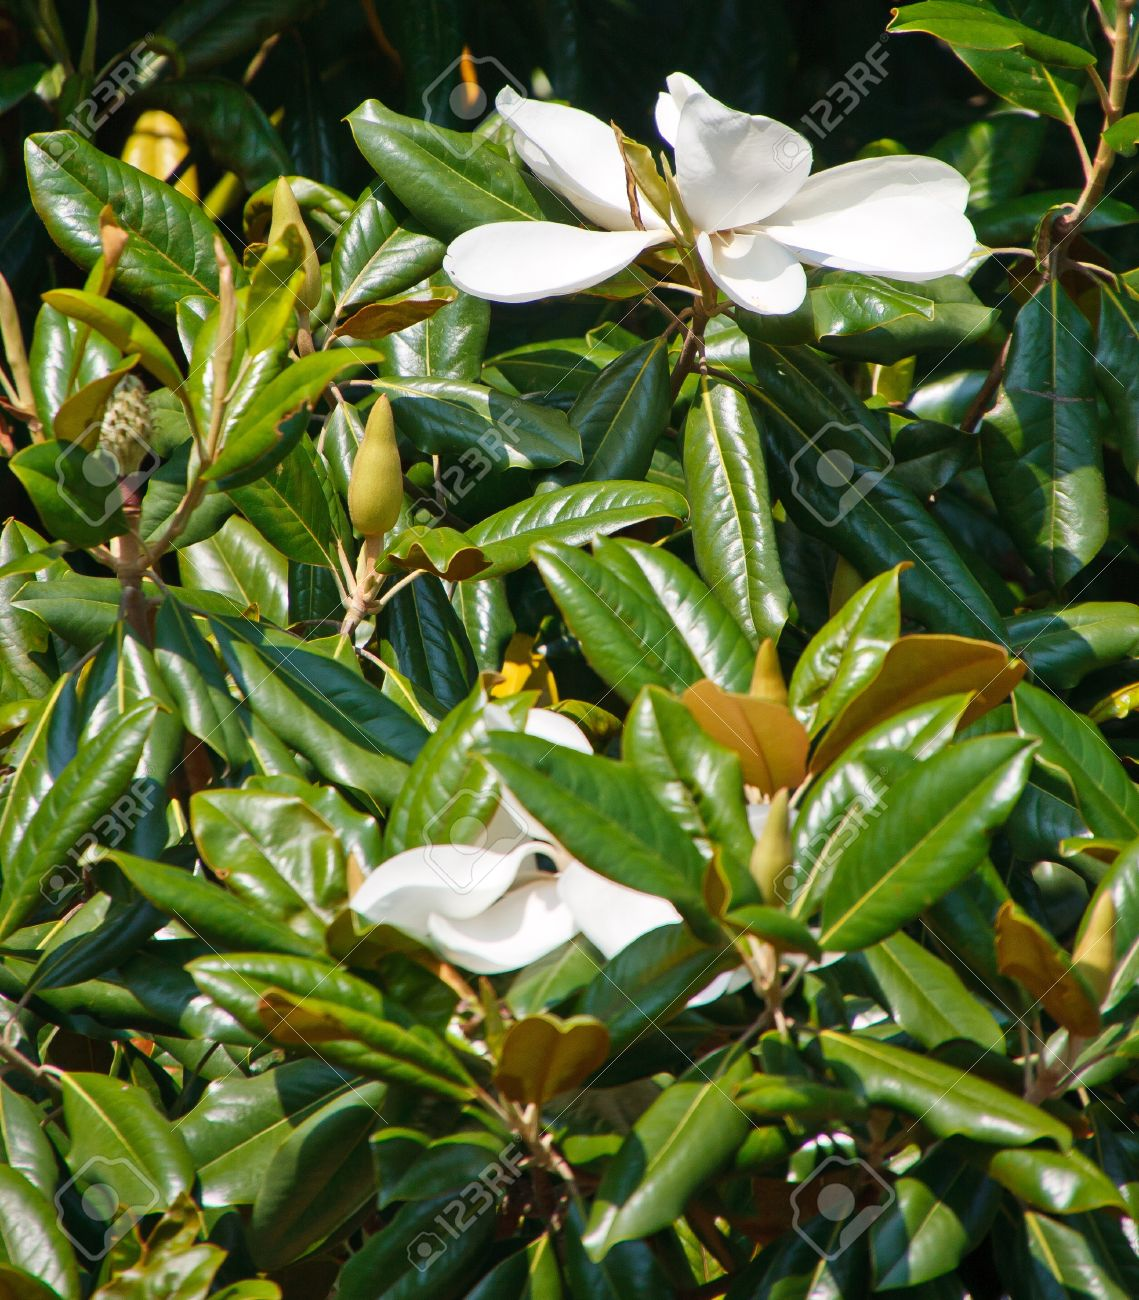 Two White Magnolia Blossoms On A Magnolia Tree In Sunshine Stock